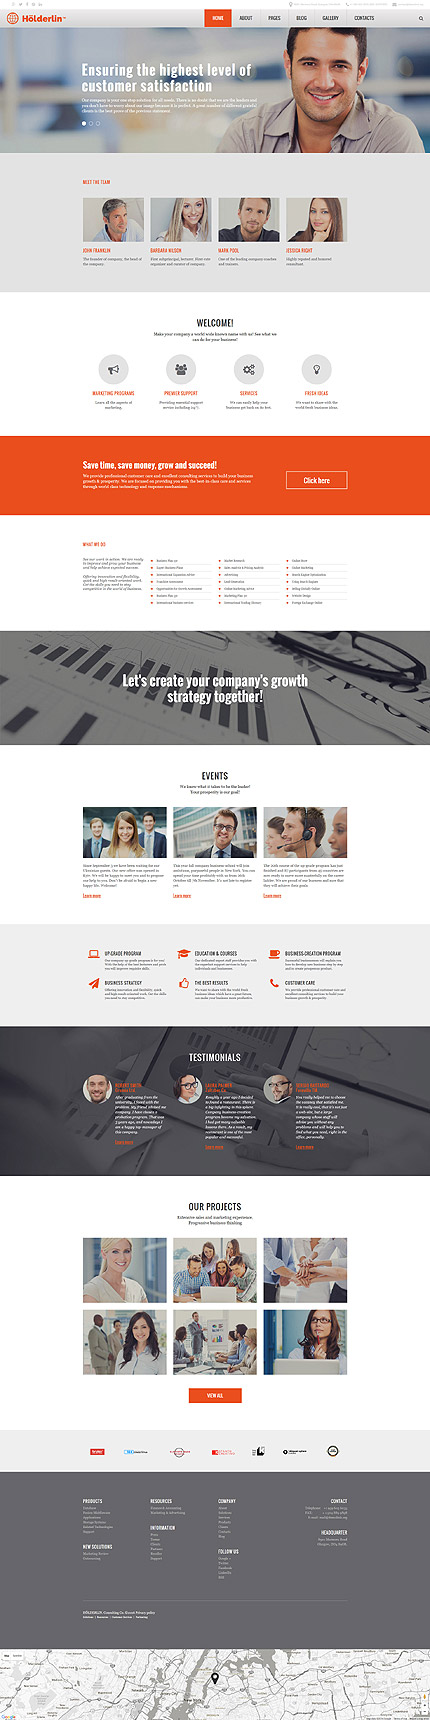 Joomla Theme/Template 57557 Main Page Screenshot